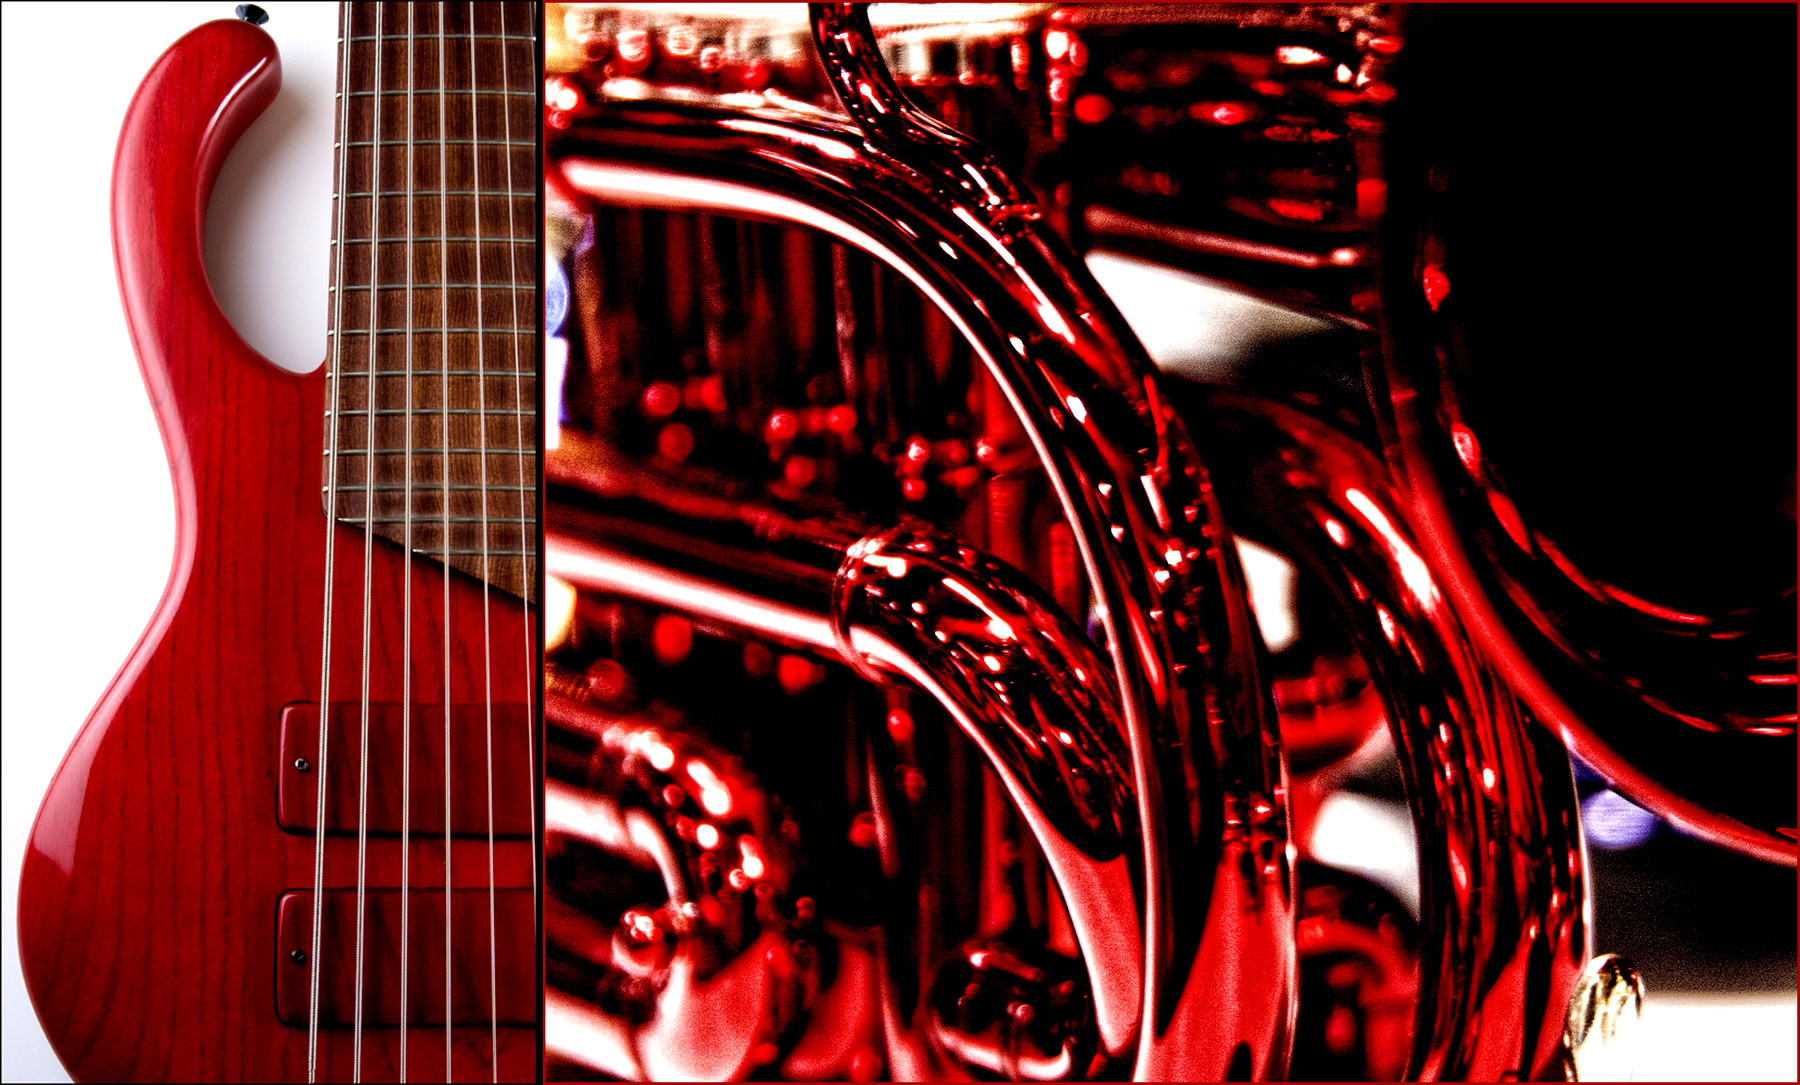 Red Instruments-Musicman Photography